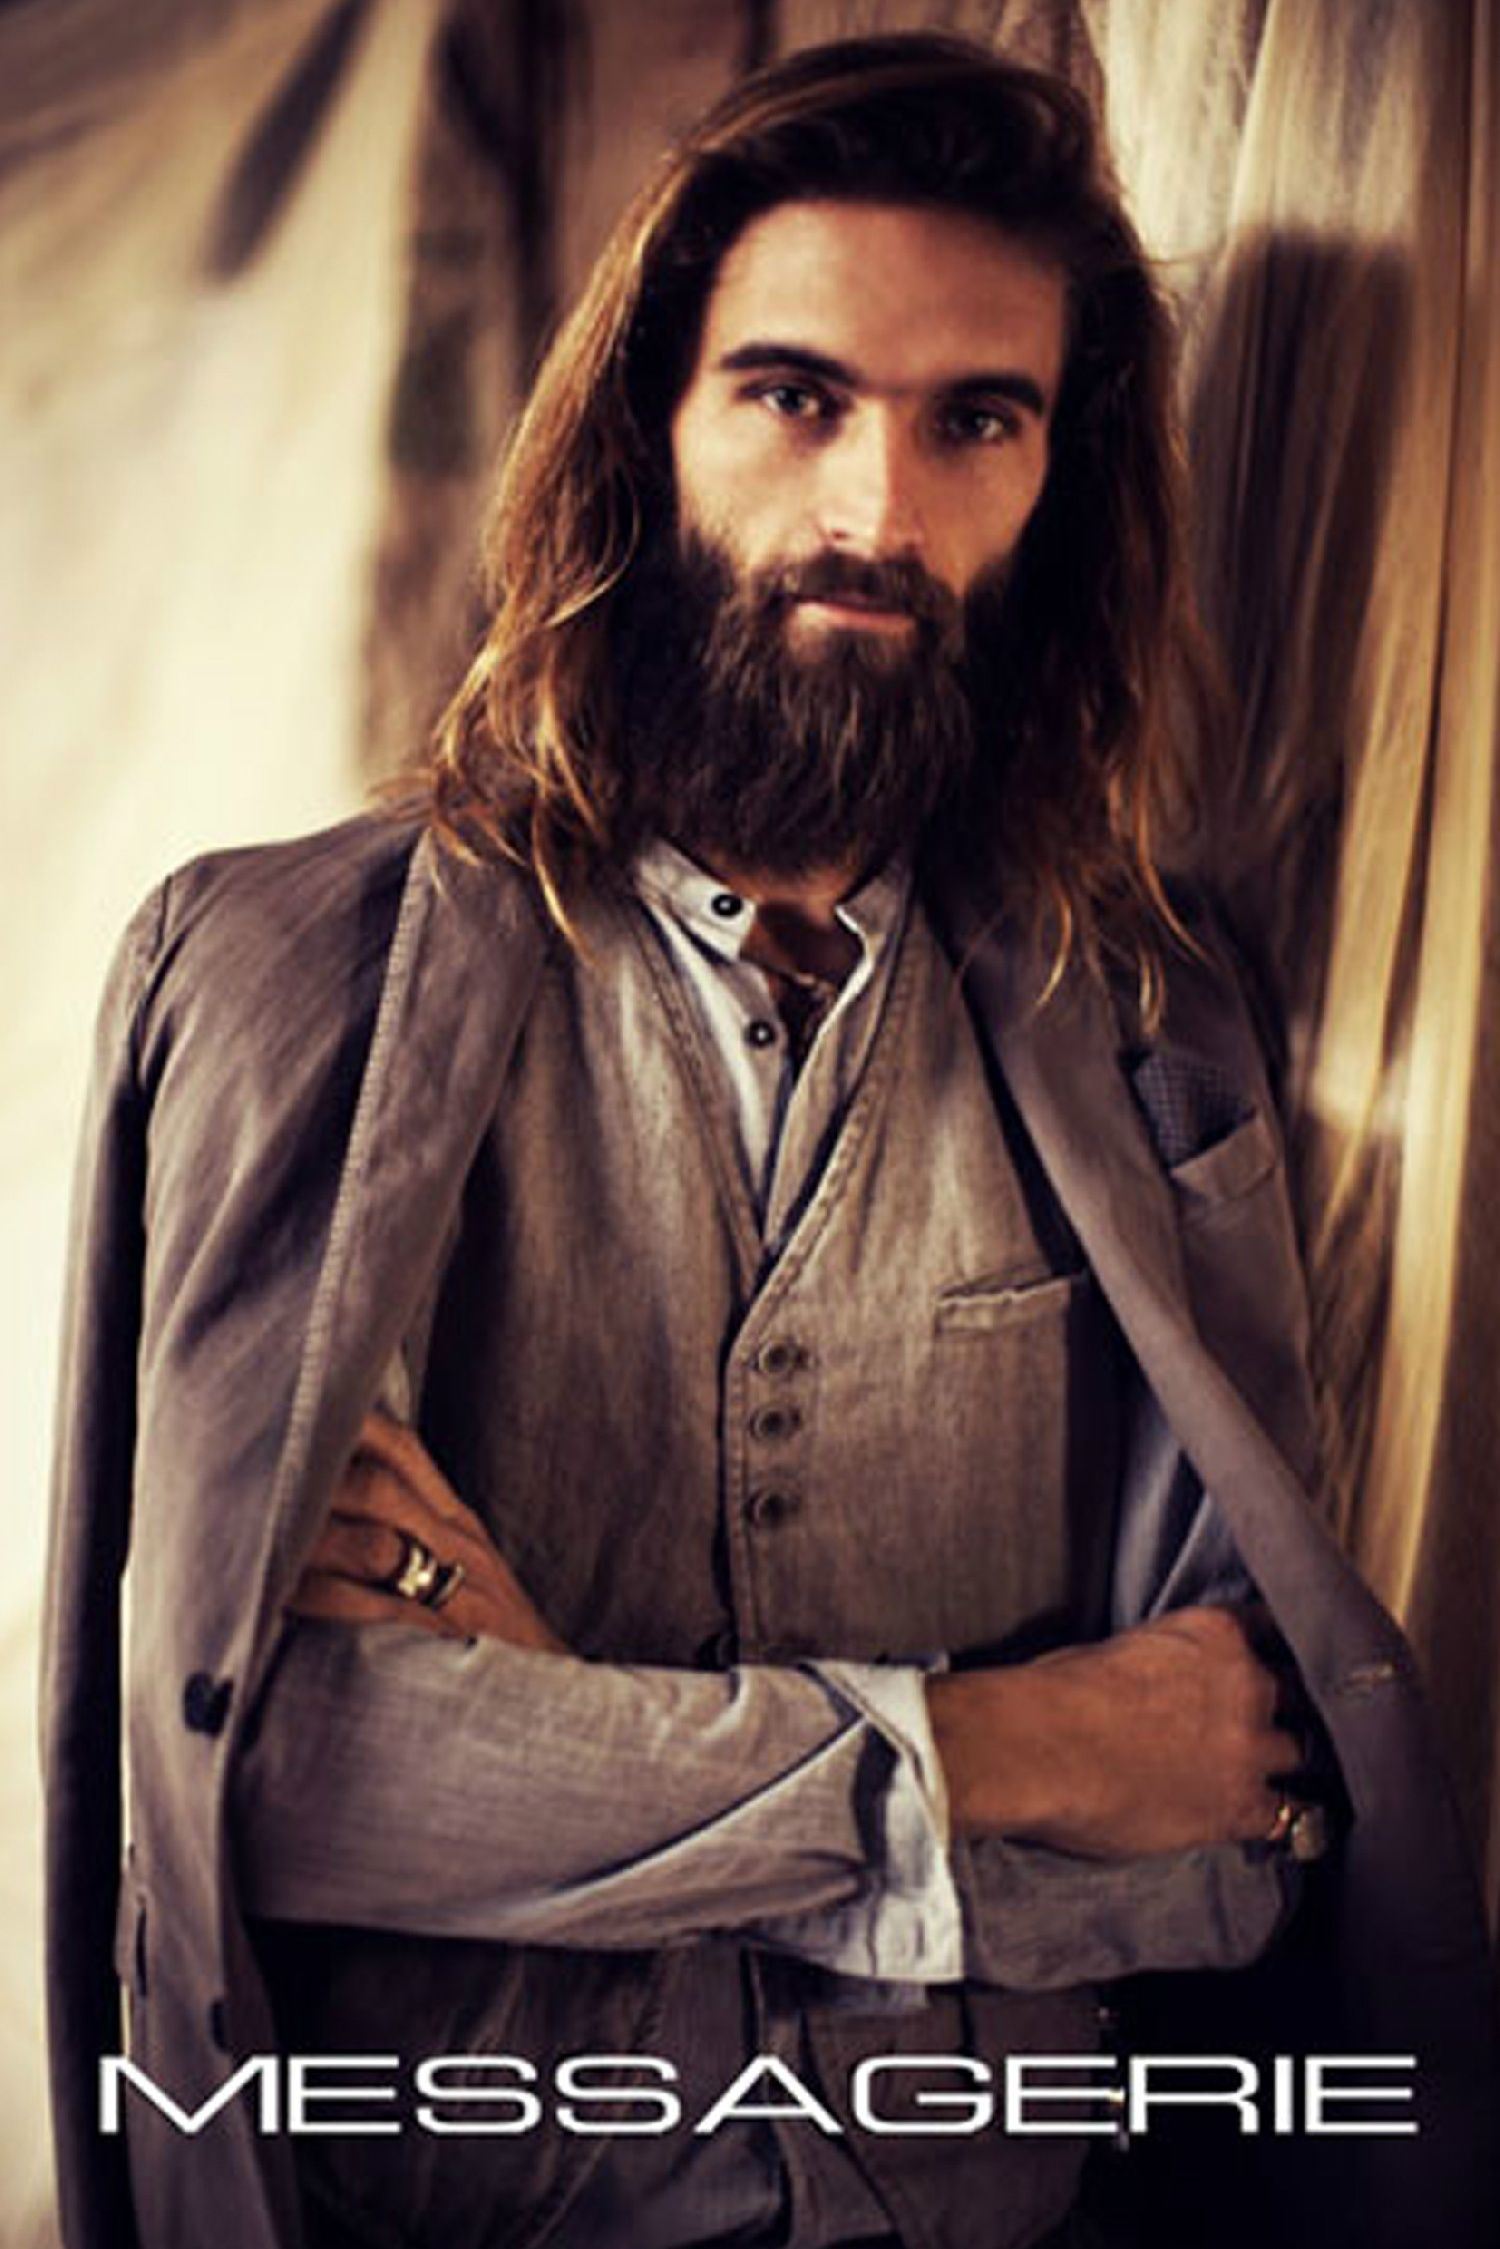 Pin by Robert on Pogonophiles Men's fashion brands